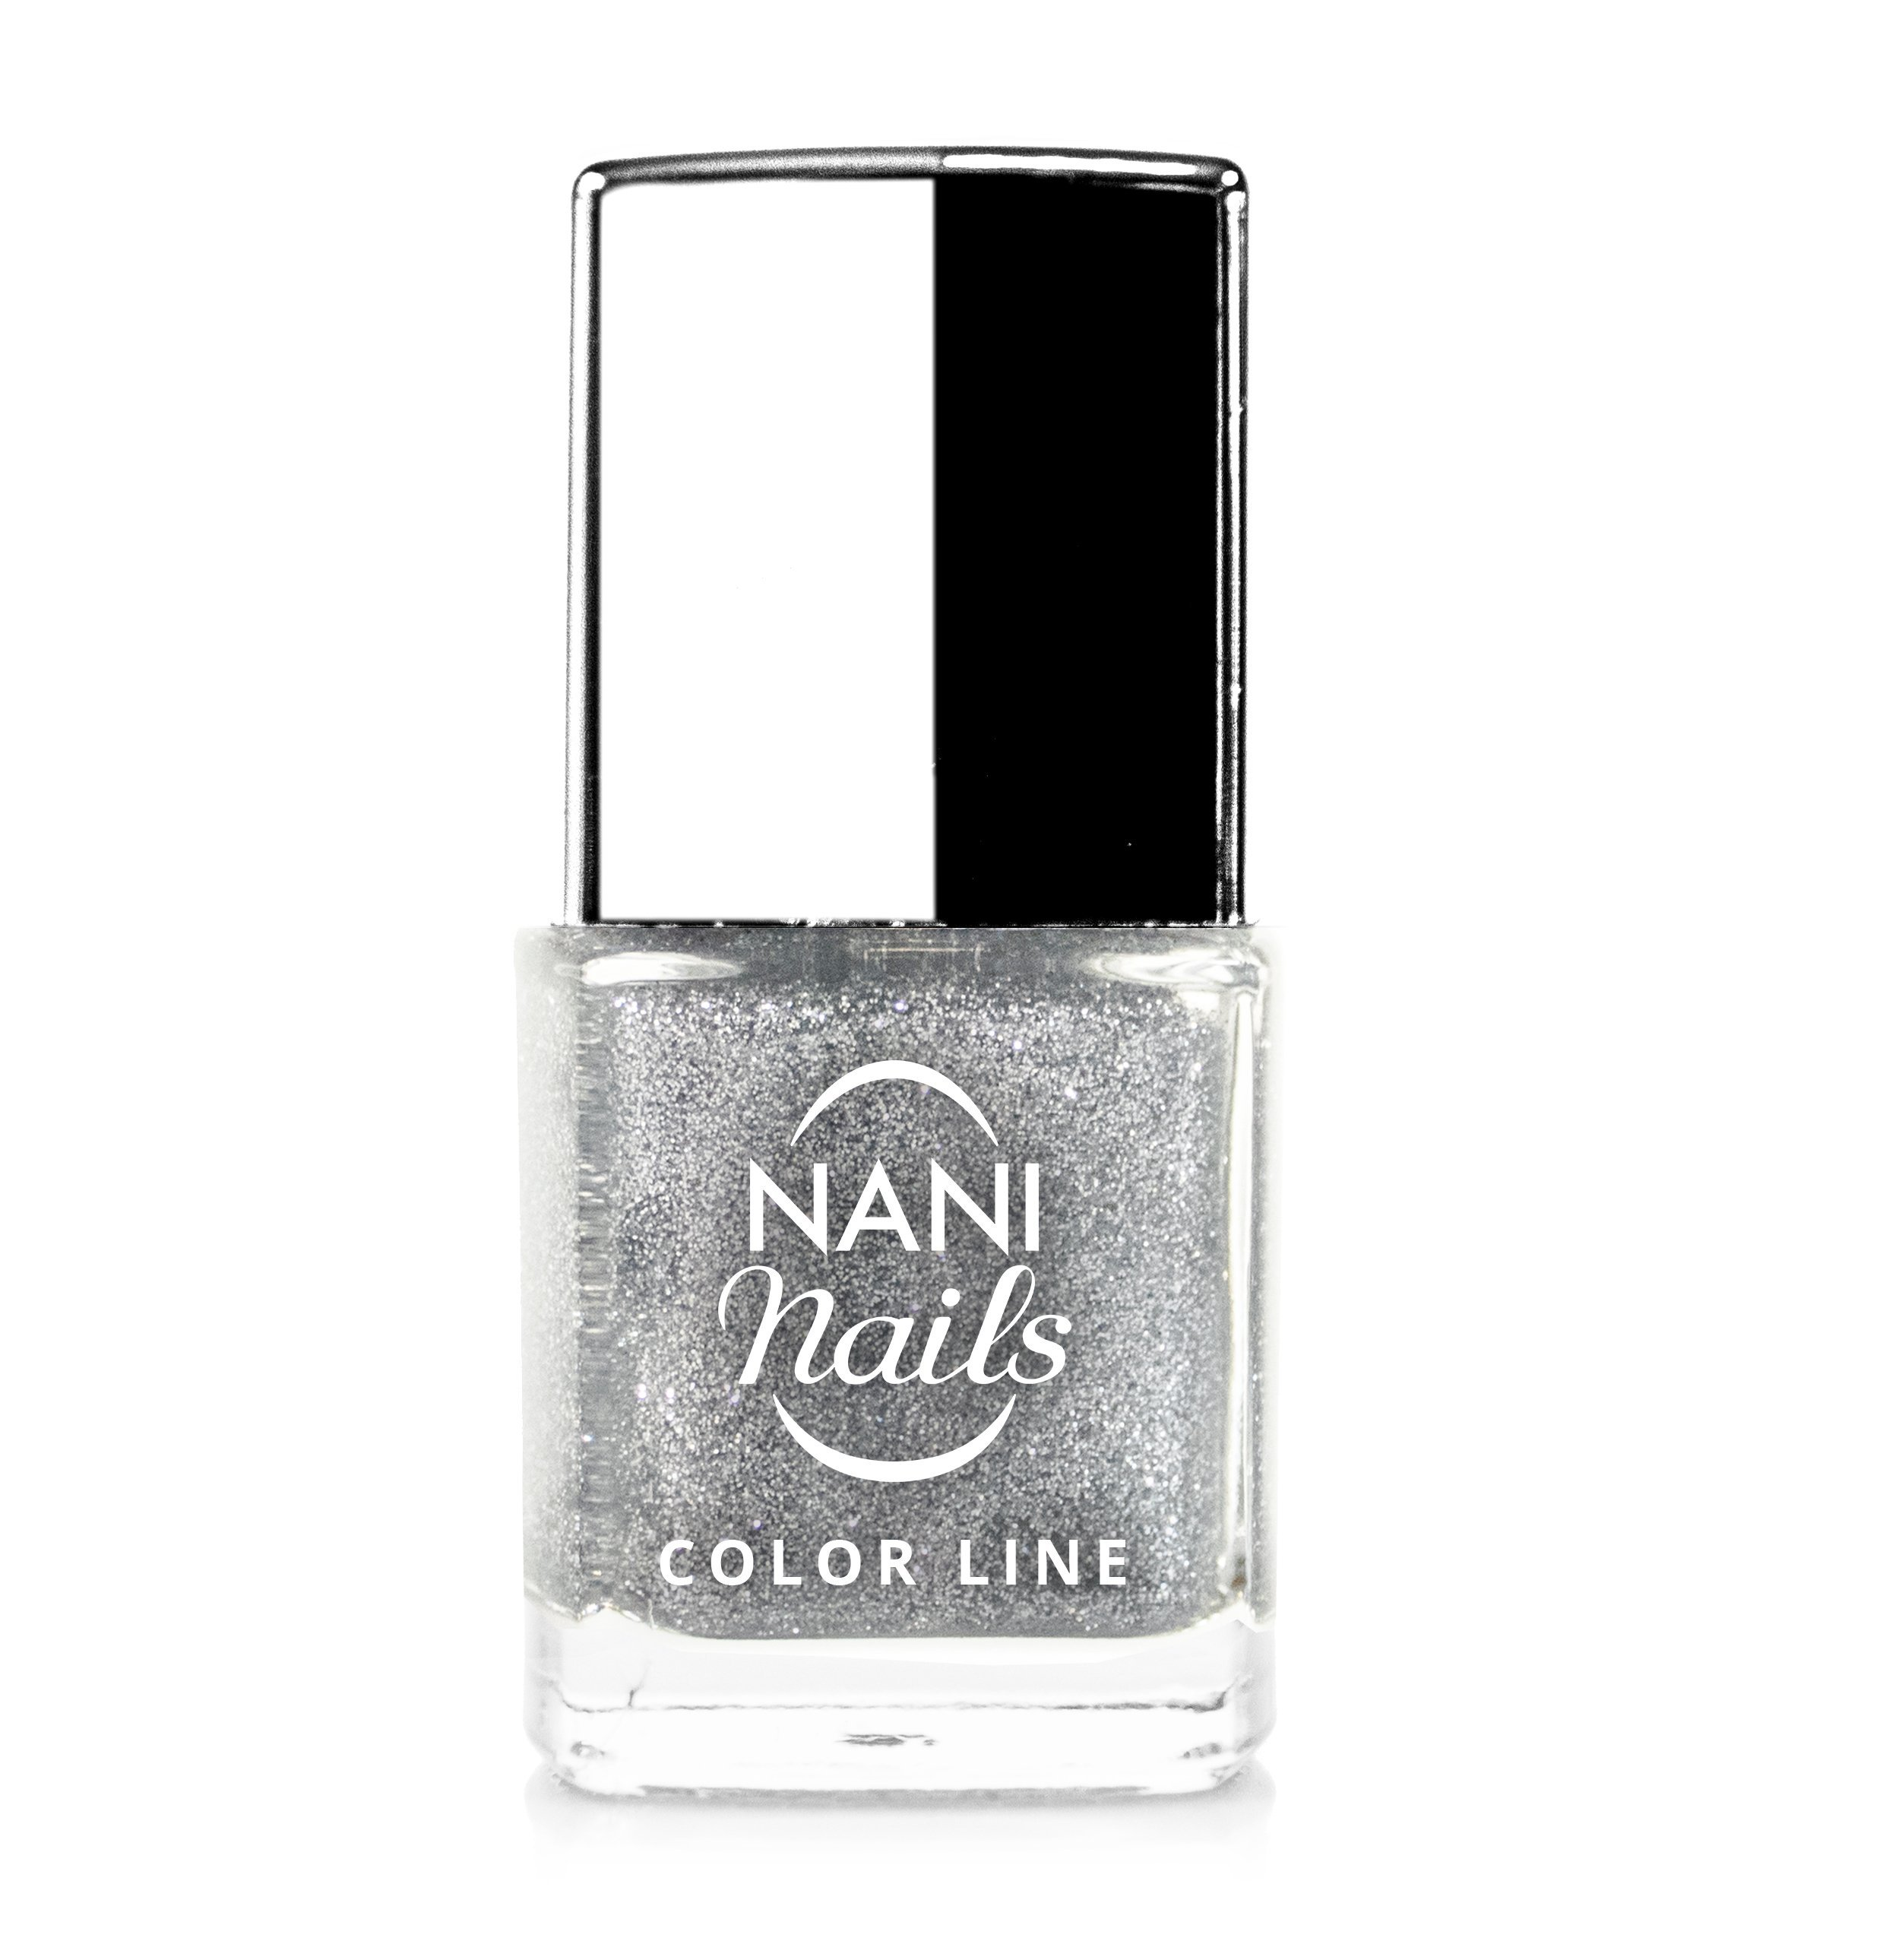 NANI lak Color Line 9 ml - 91